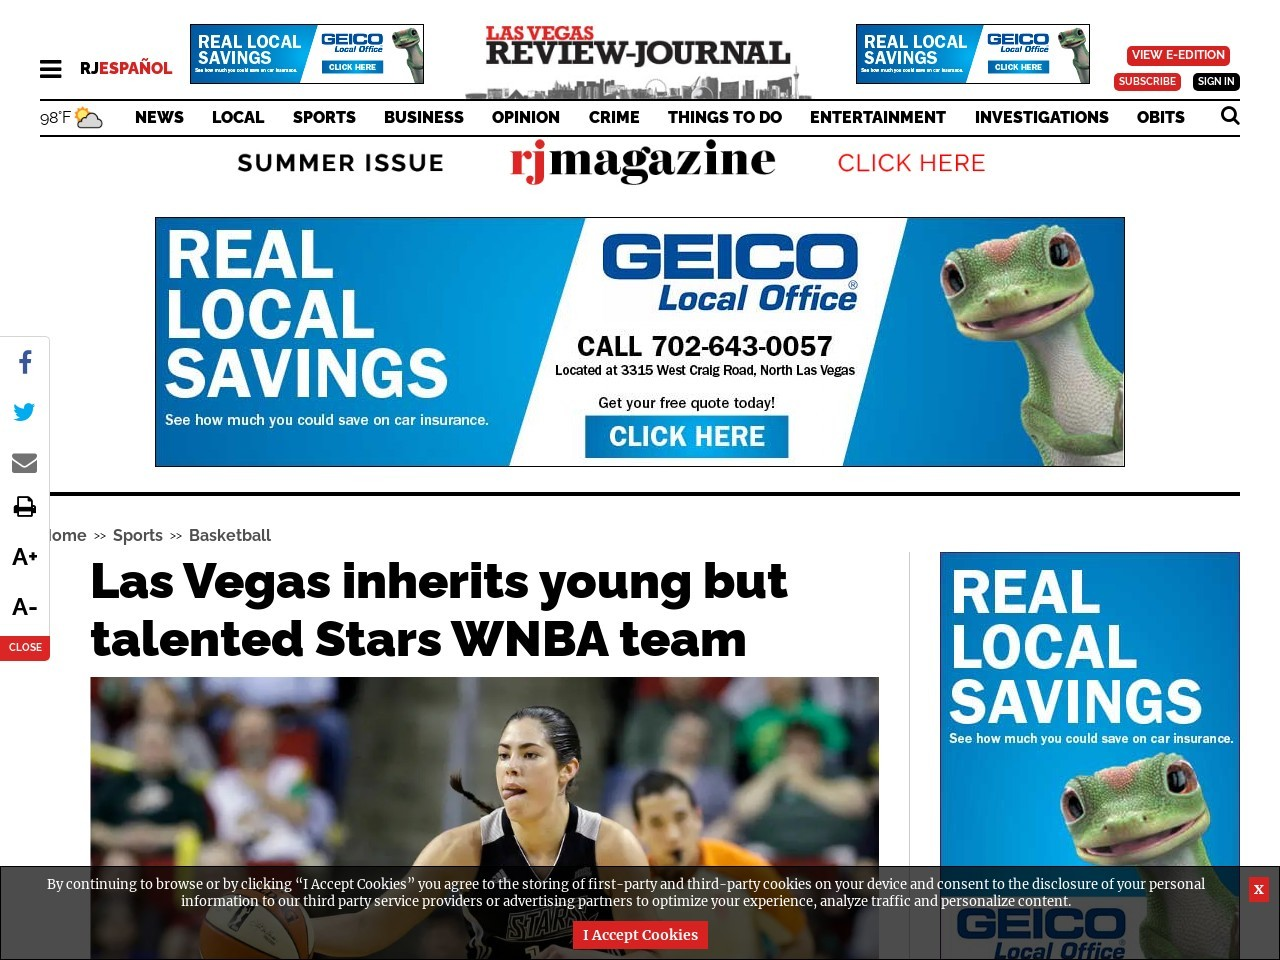 Las Vegas inherits young but talented Stars WNBA team